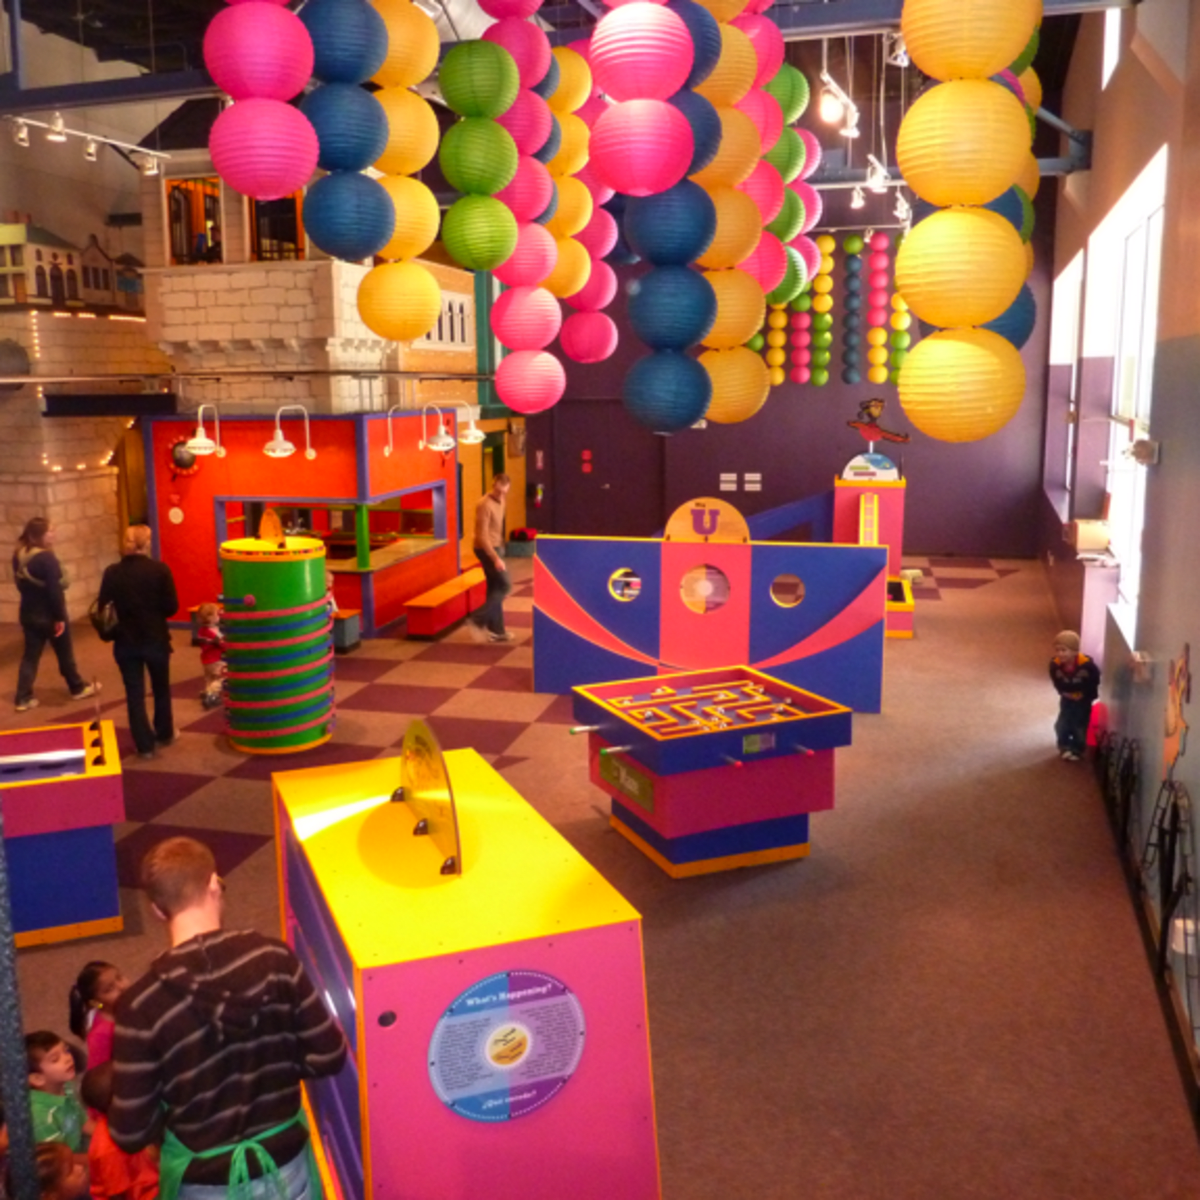 Austin Photo: Places_Arts_Austin_Children's_Museum_Interior